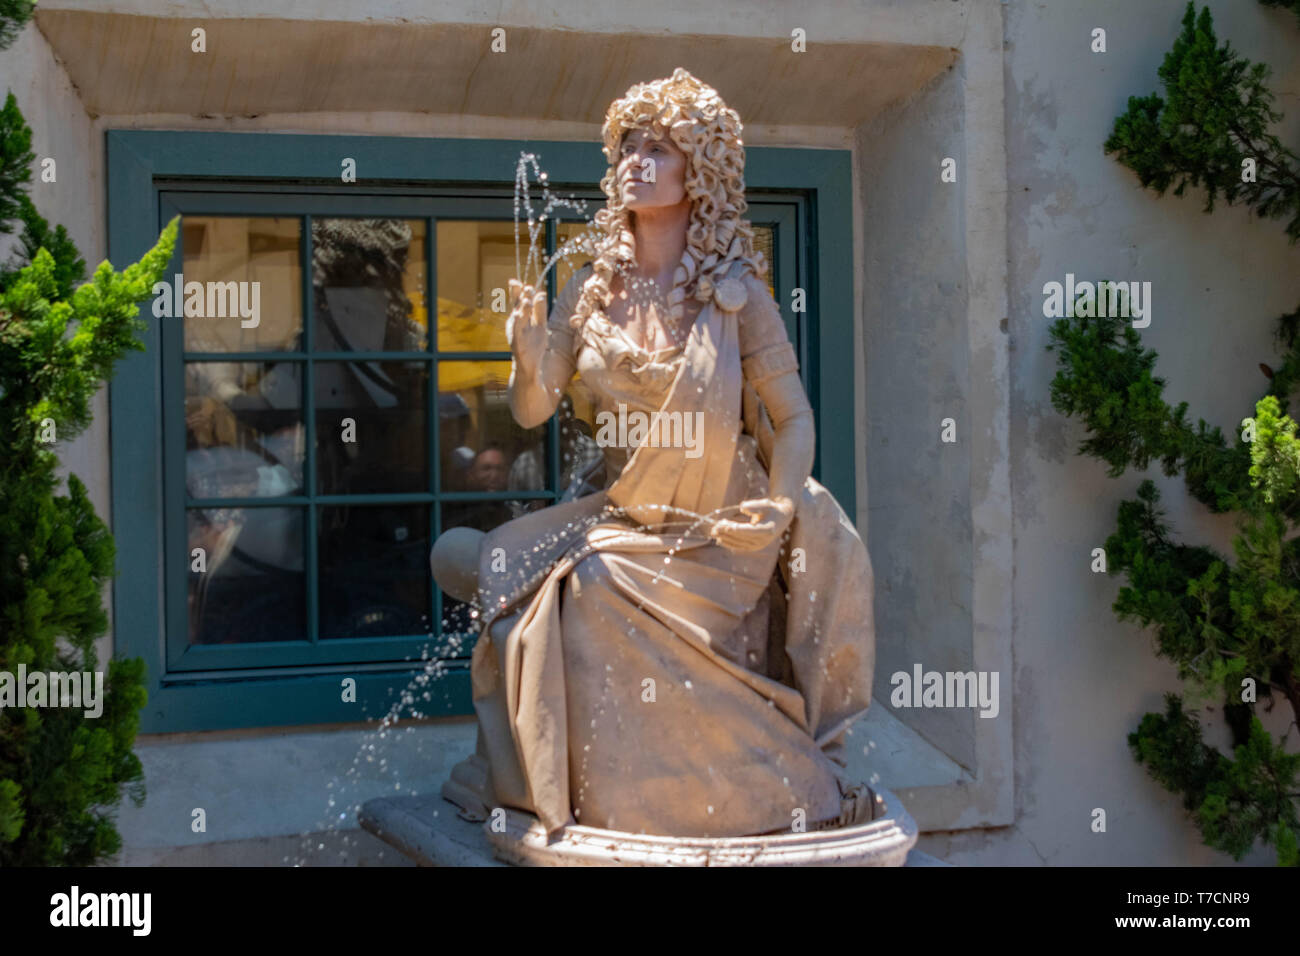 Orlando, Florida. April 20, 2019. Woman living statue throws small jets of water from her hands at Seaworld in International Drive area (3) - Stock Image